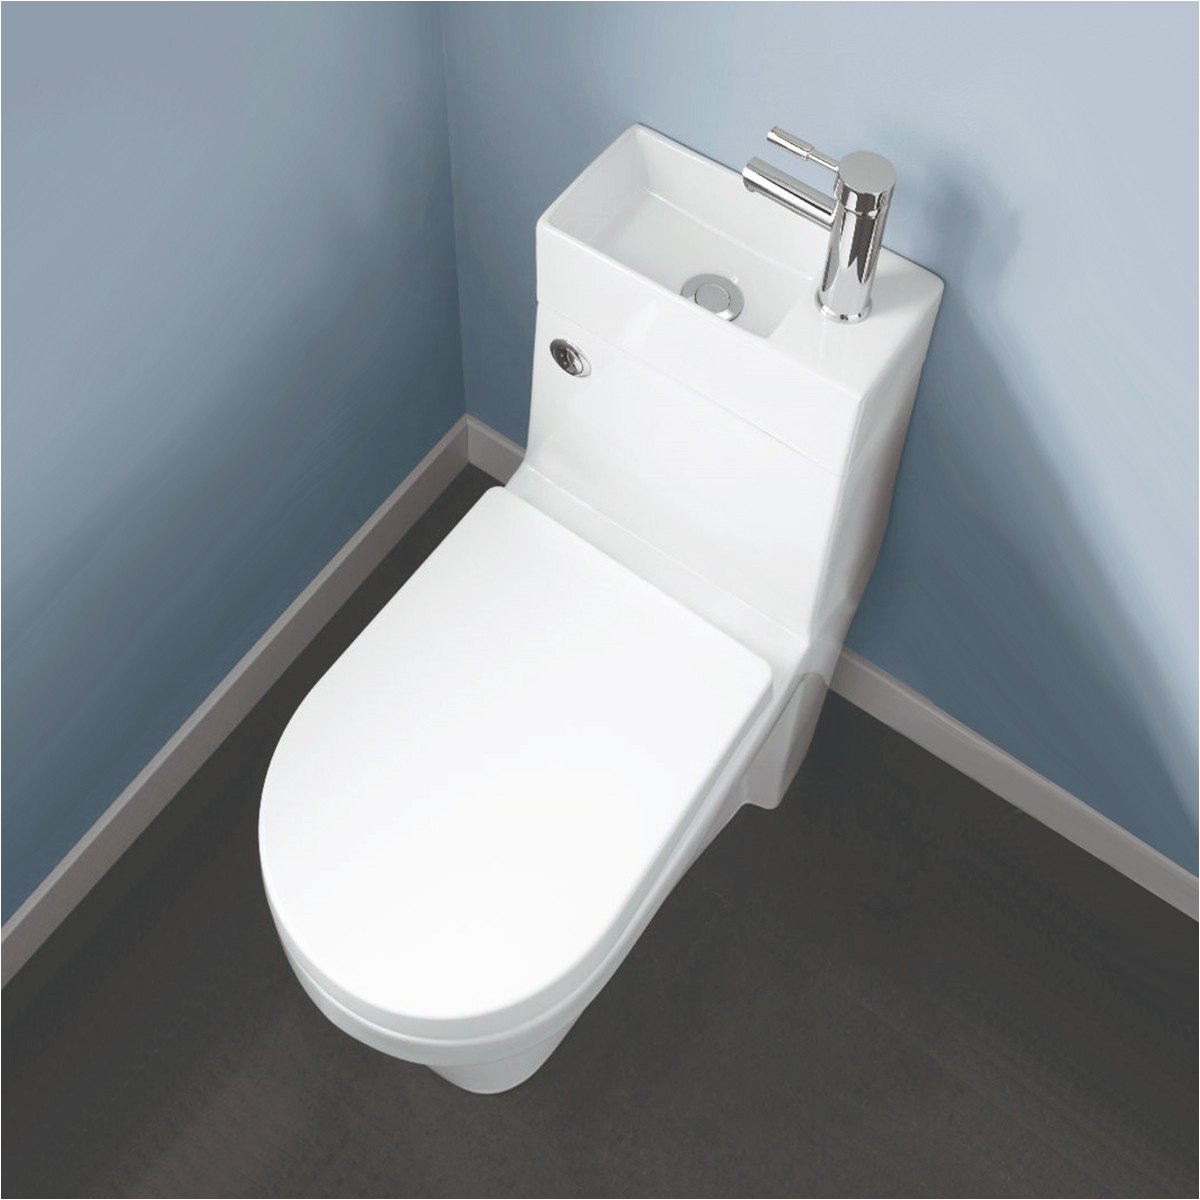 bathroom supastore two in one combination close coupled toilet with wash basin amazon co uk kitchen home